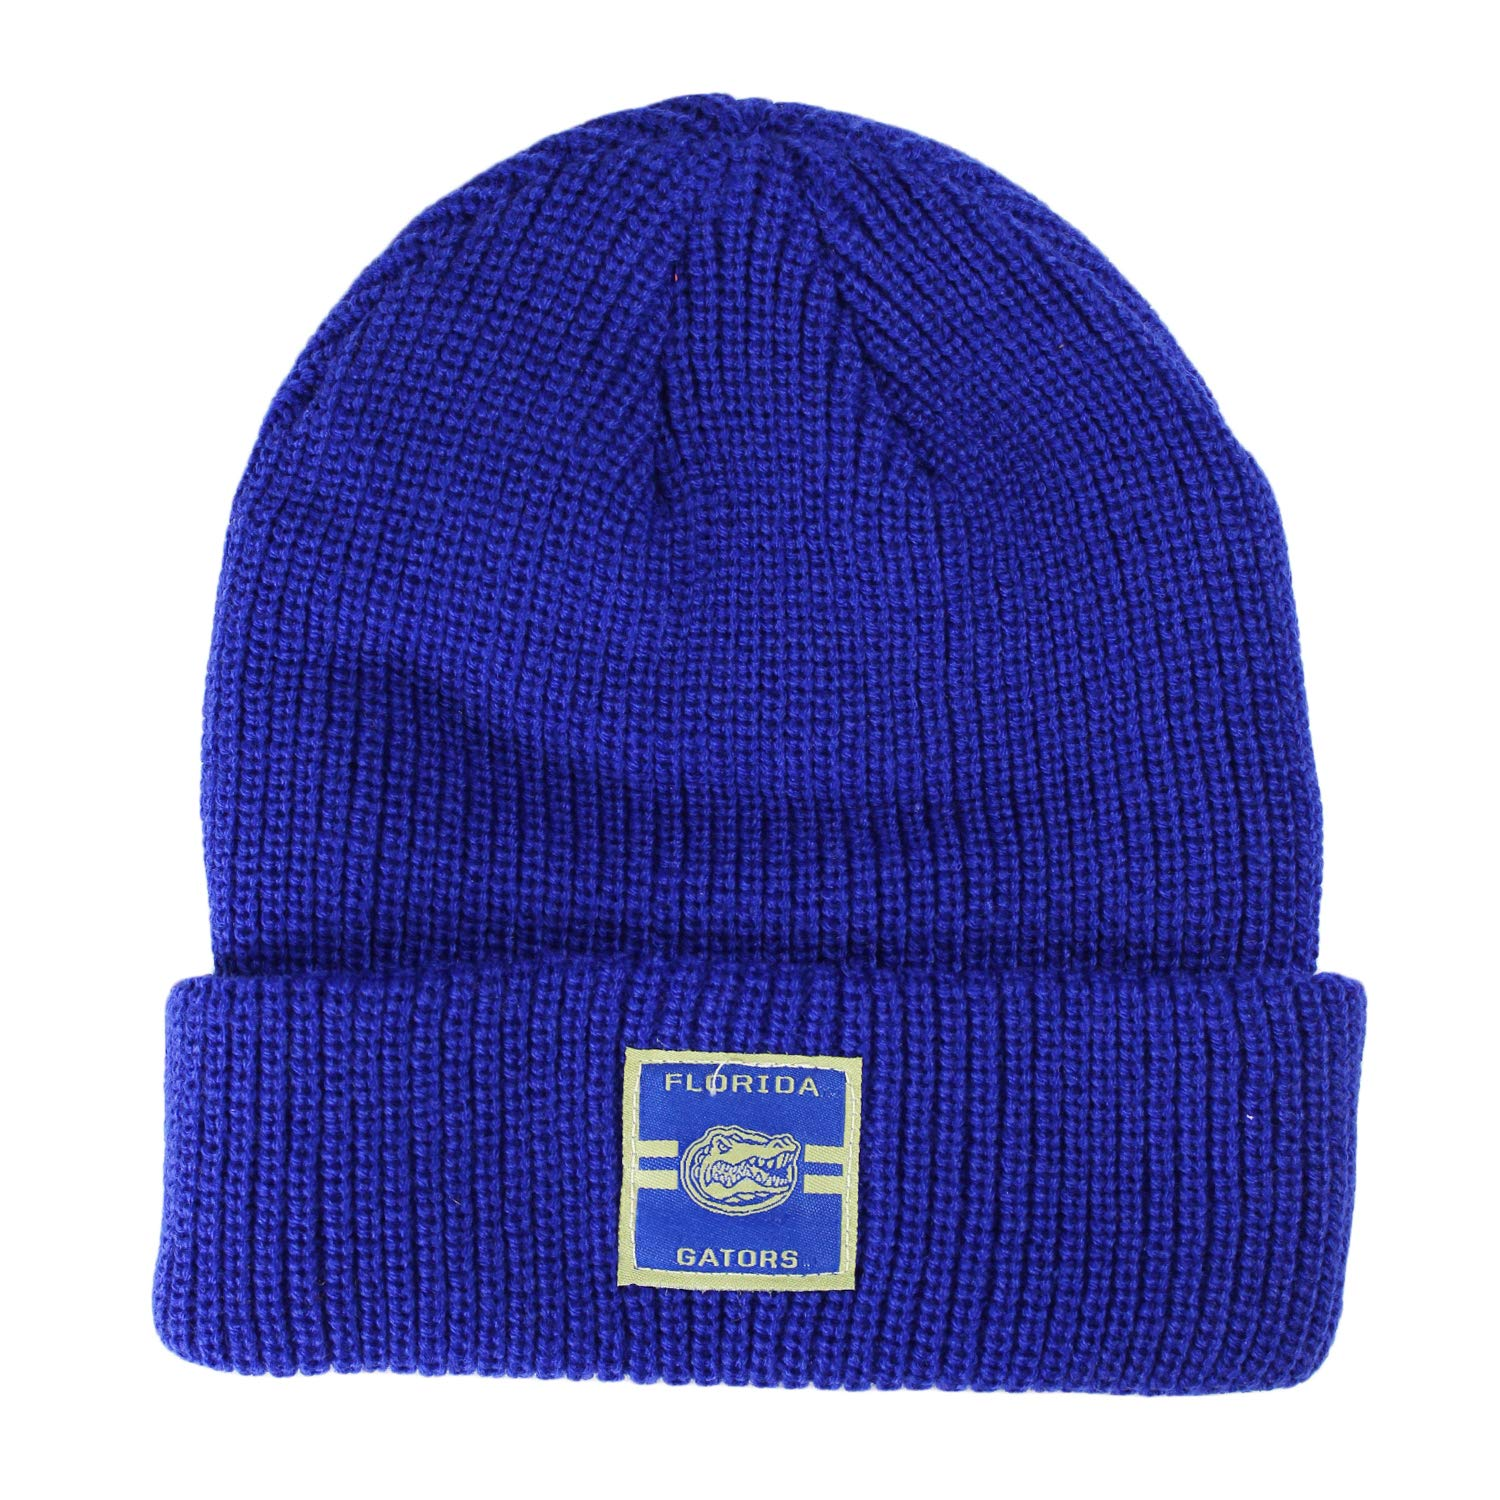 Top of the World Florida Gators Official NCAA Cuffed Knit Incline Stocking Stretch Sock Hat Cap Beanie 483511